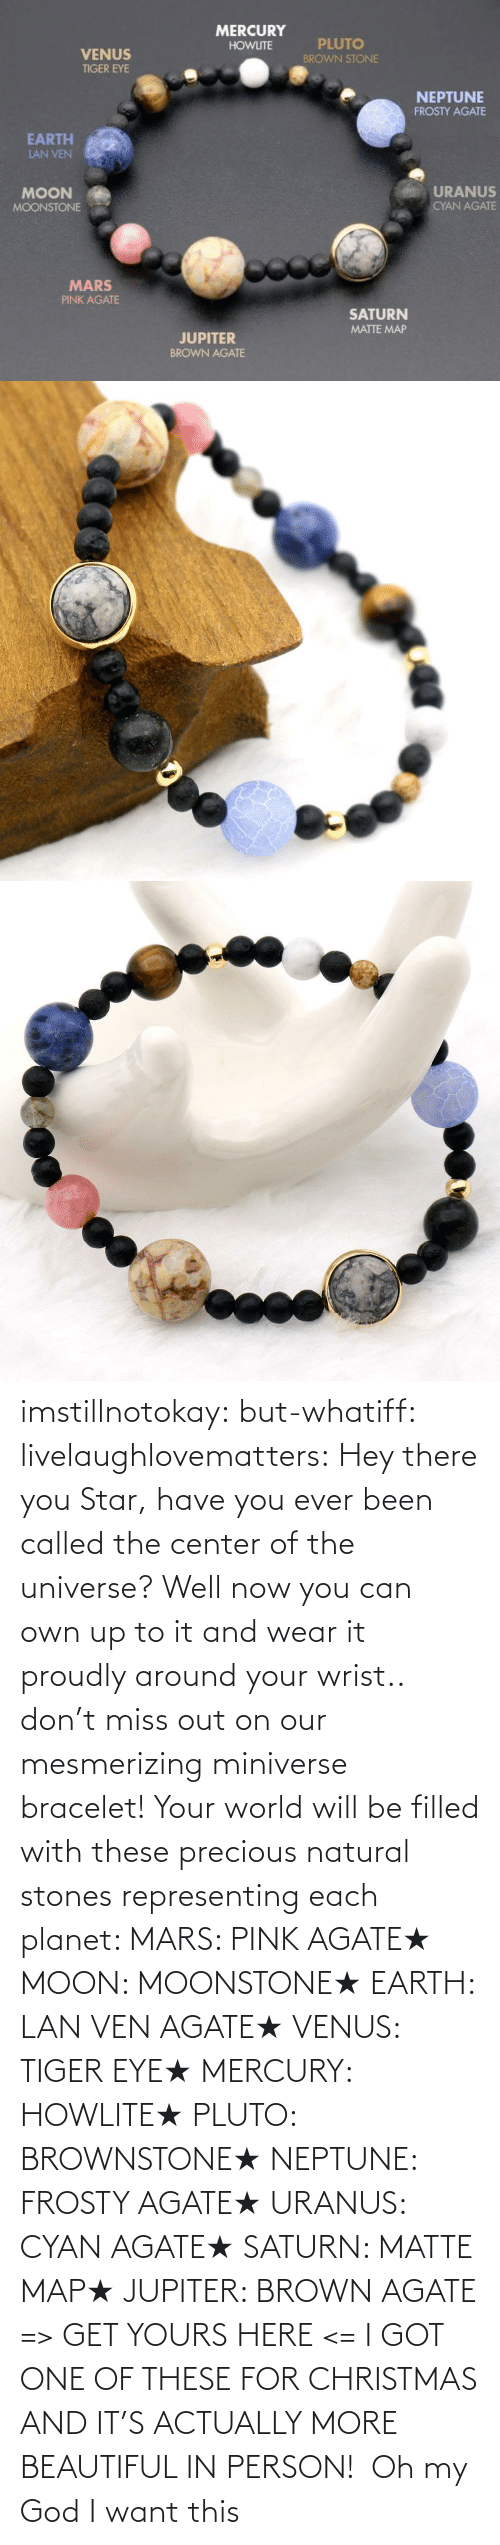 yours: imstillnotokay:  but-whatiff: livelaughlovematters:  Hey there you Star, have you ever been called the center of the universe? Well now you can own up to it and wear it proudly around your wrist.. don't miss out on our mesmerizing miniverse bracelet! Your world will be filled with these precious natural stones representing each planet:  MARS: PINK AGATE★ MOON: MOONSTONE★ EARTH: LAN VEN AGATE★ VENUS: TIGER EYE★ MERCURY: HOWLITE★ PLUTO: BROWNSTONE★ NEPTUNE: FROSTY AGATE★ URANUS: CYAN AGATE★ SATURN: MATTE MAP★ JUPITER: BROWN AGATE => GET YOURS HERE <=  I GOT ONE OF THESE FOR CHRISTMAS AND IT'S ACTUALLY MORE BEAUTIFUL IN PERSON!     Oh my God I want this